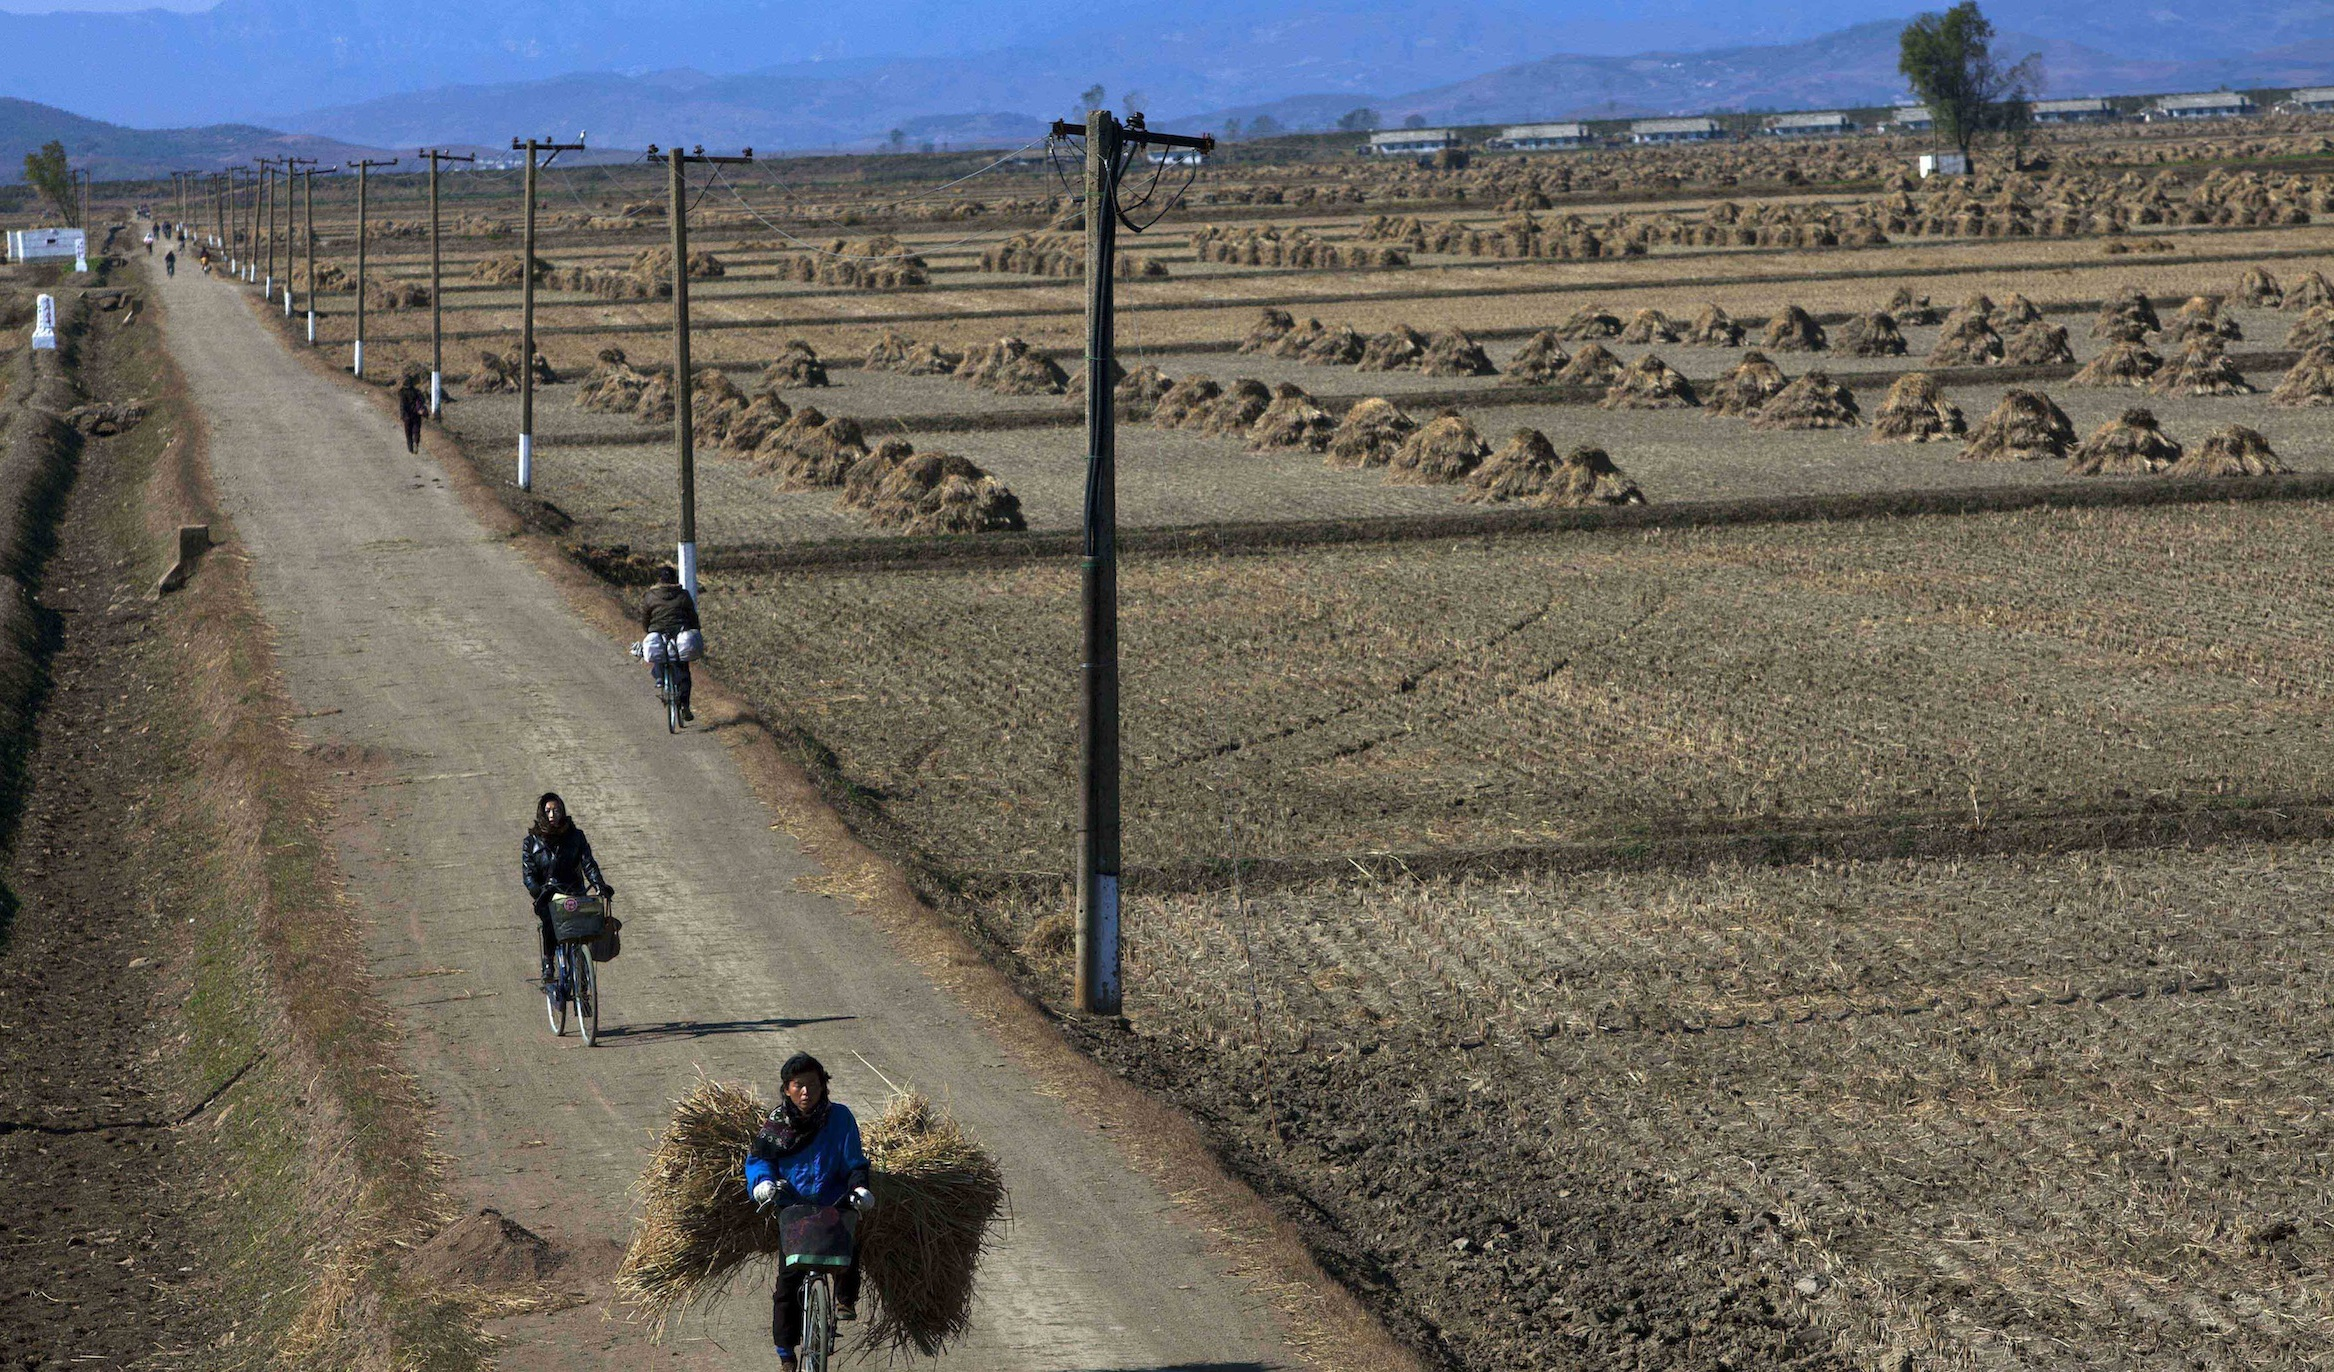 In this Tuesday, Oct. 25, 2011 photo, North Korean farmers pass along a road past farm fields at a collective farm near the town of Sariwon, North Korea. In a landmark shift after three years of tensions, the United States is poised to announce in the coming days its first significant donation of food aid to North Korea _ a small but symbolic offer that is expected to pave the way for long-stalled discussions on dismantling Pyongyang's nuclear program.